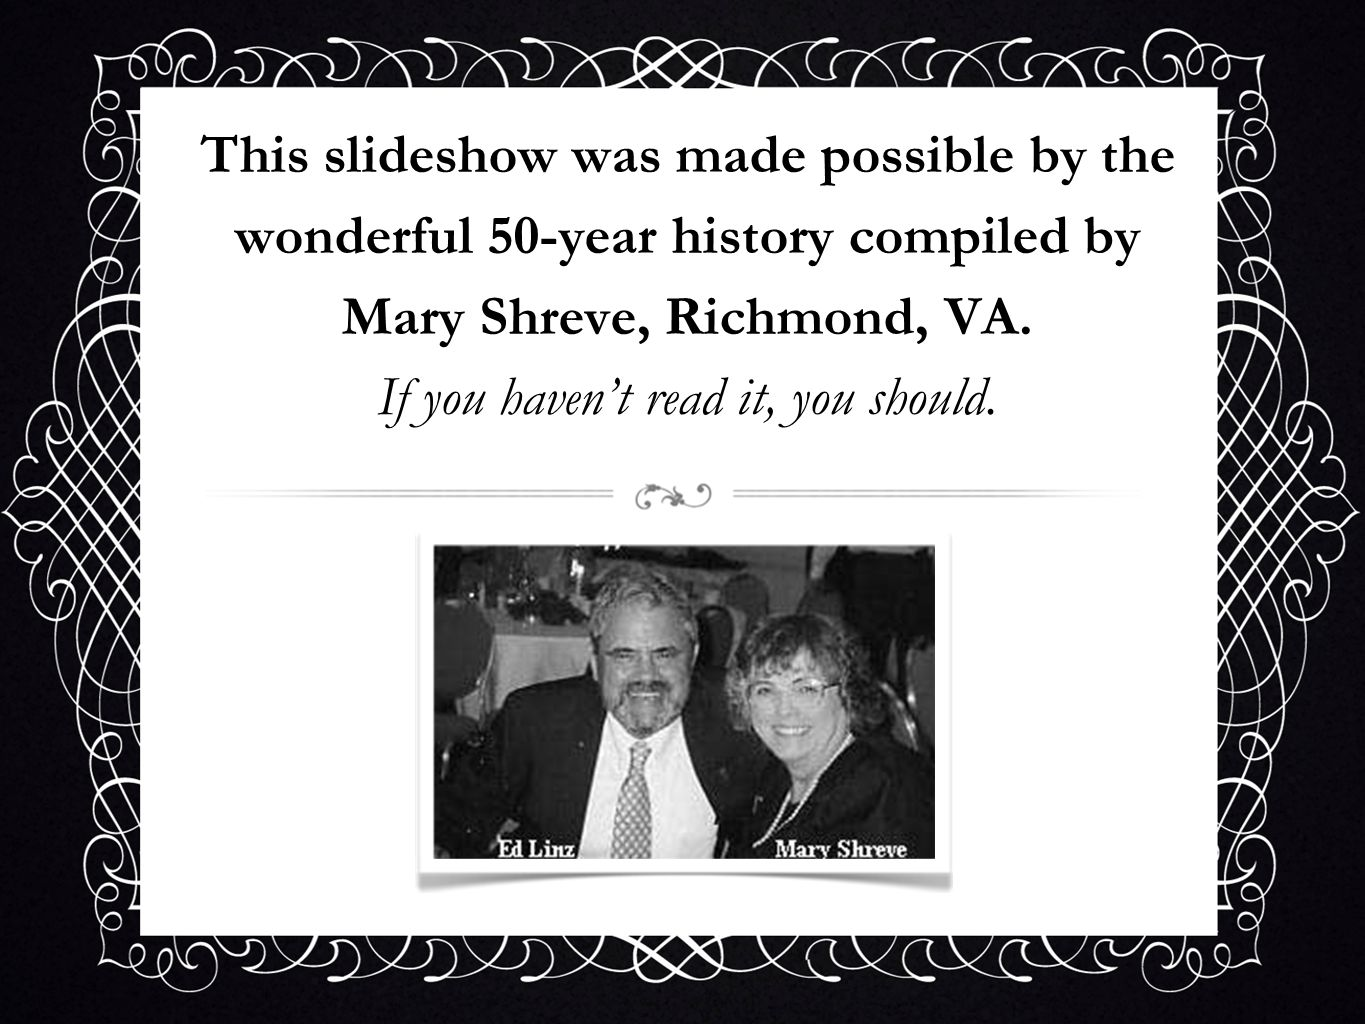 This slideshow was made possible by the wonderful 50-year history compiled by Mary Shreve, Richmond, VA.